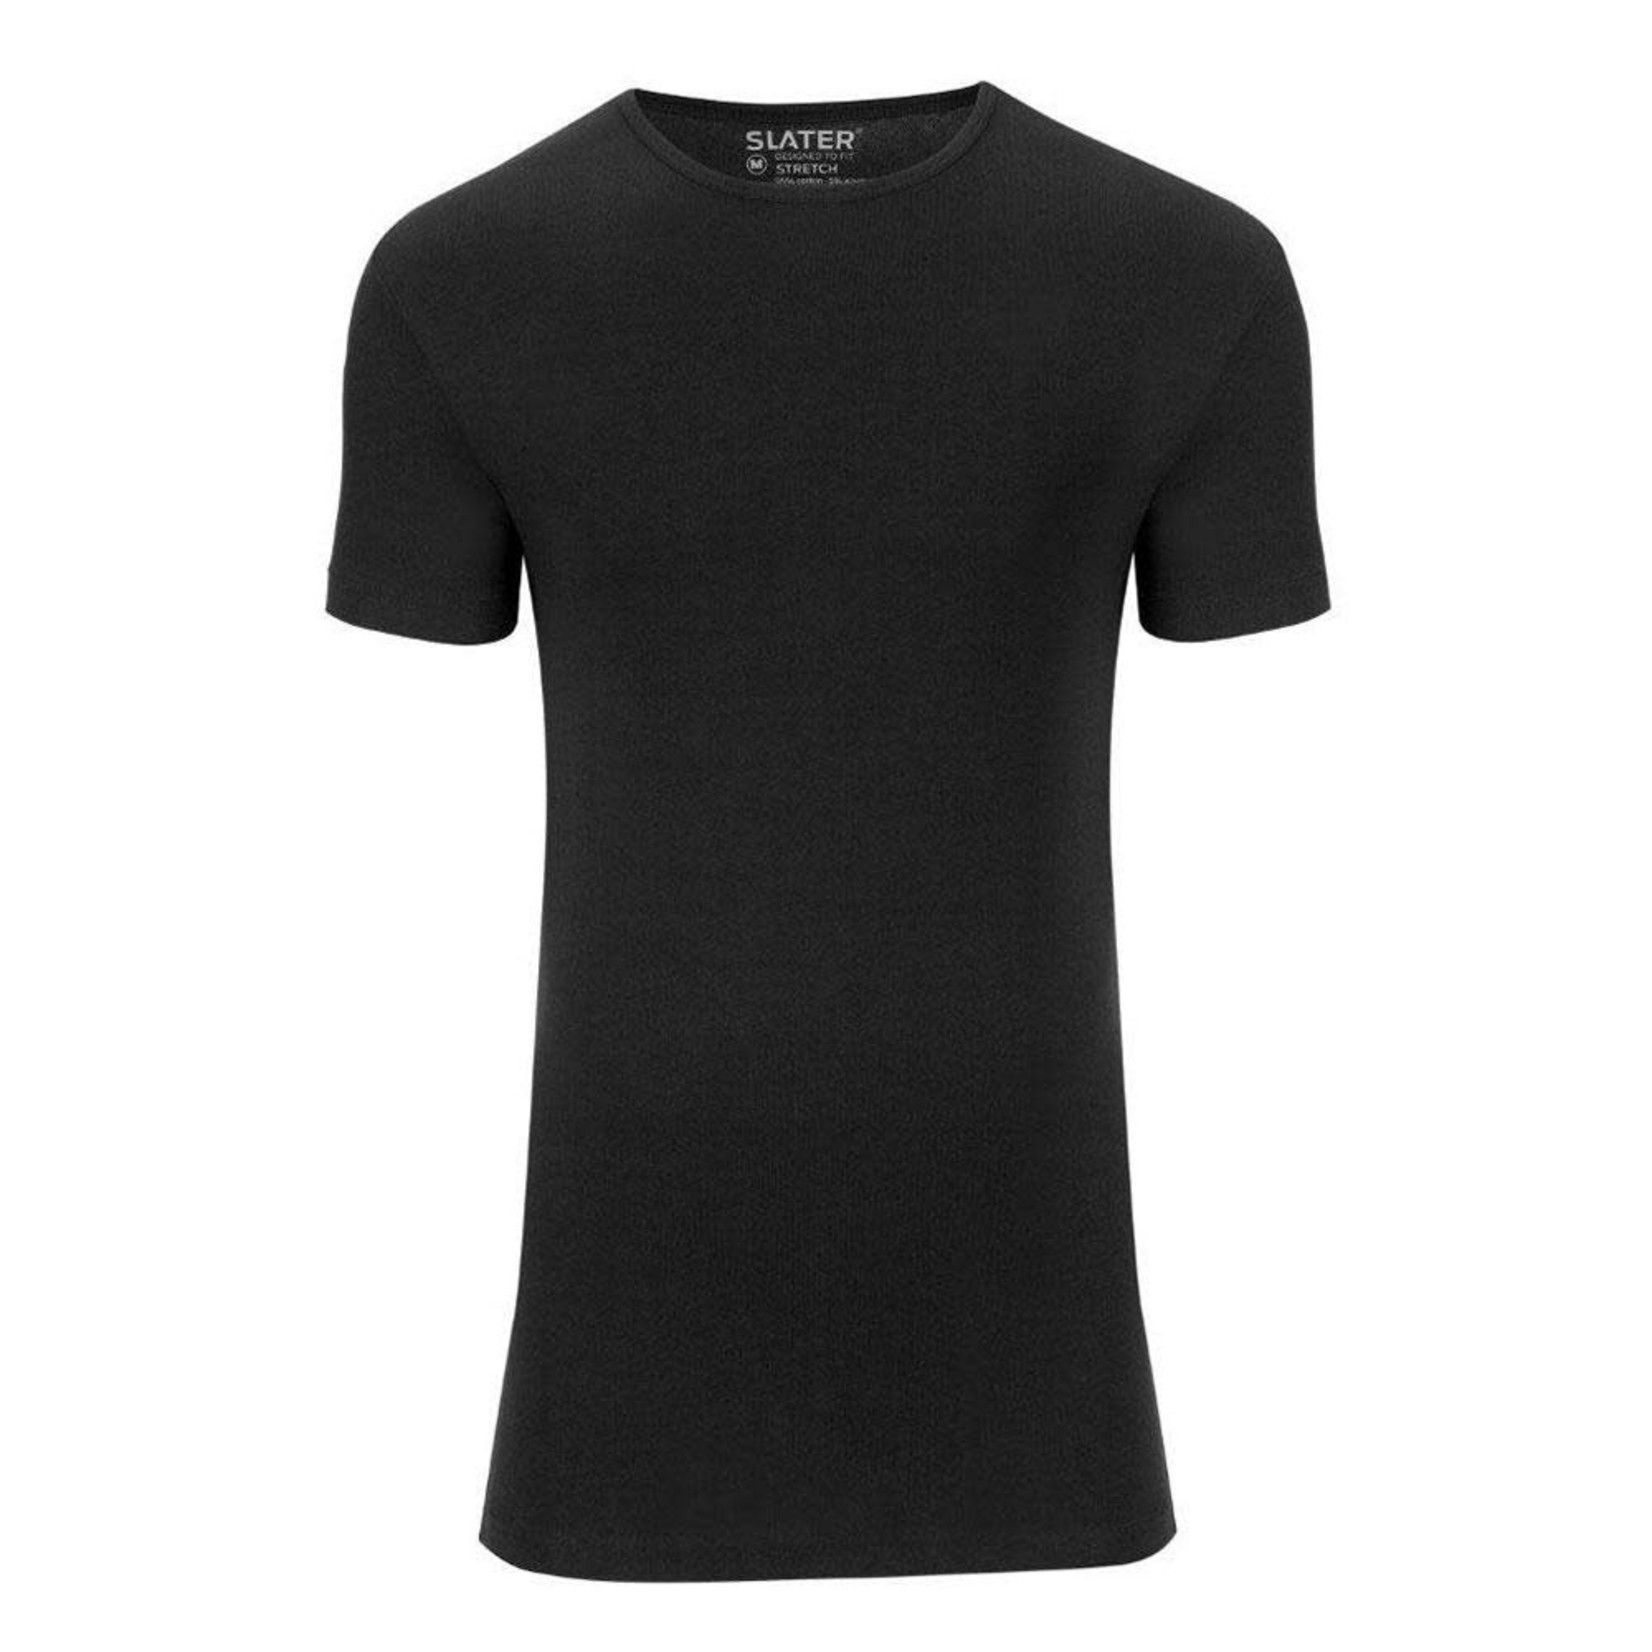 Slater Stretch 2-pack ronde hals t-shirt zwart